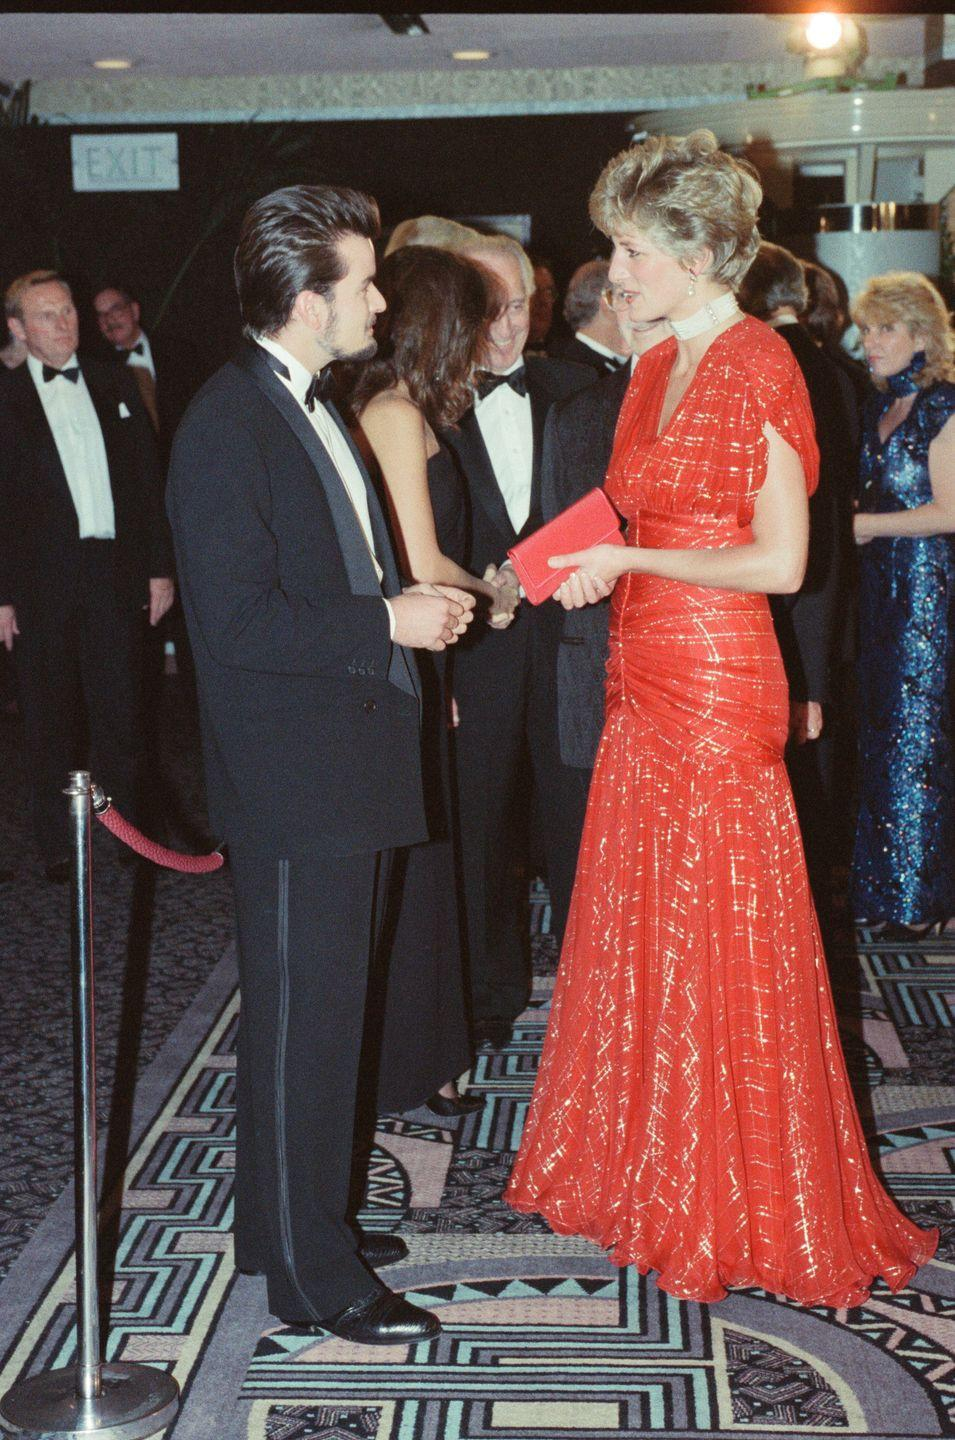 <p>Princess Diana rewore this red evening gown when she met Charlie Sheen at the London premiere of <em>Hot Shots</em>. Charlie kept it simple in a black tuxedo.</p>